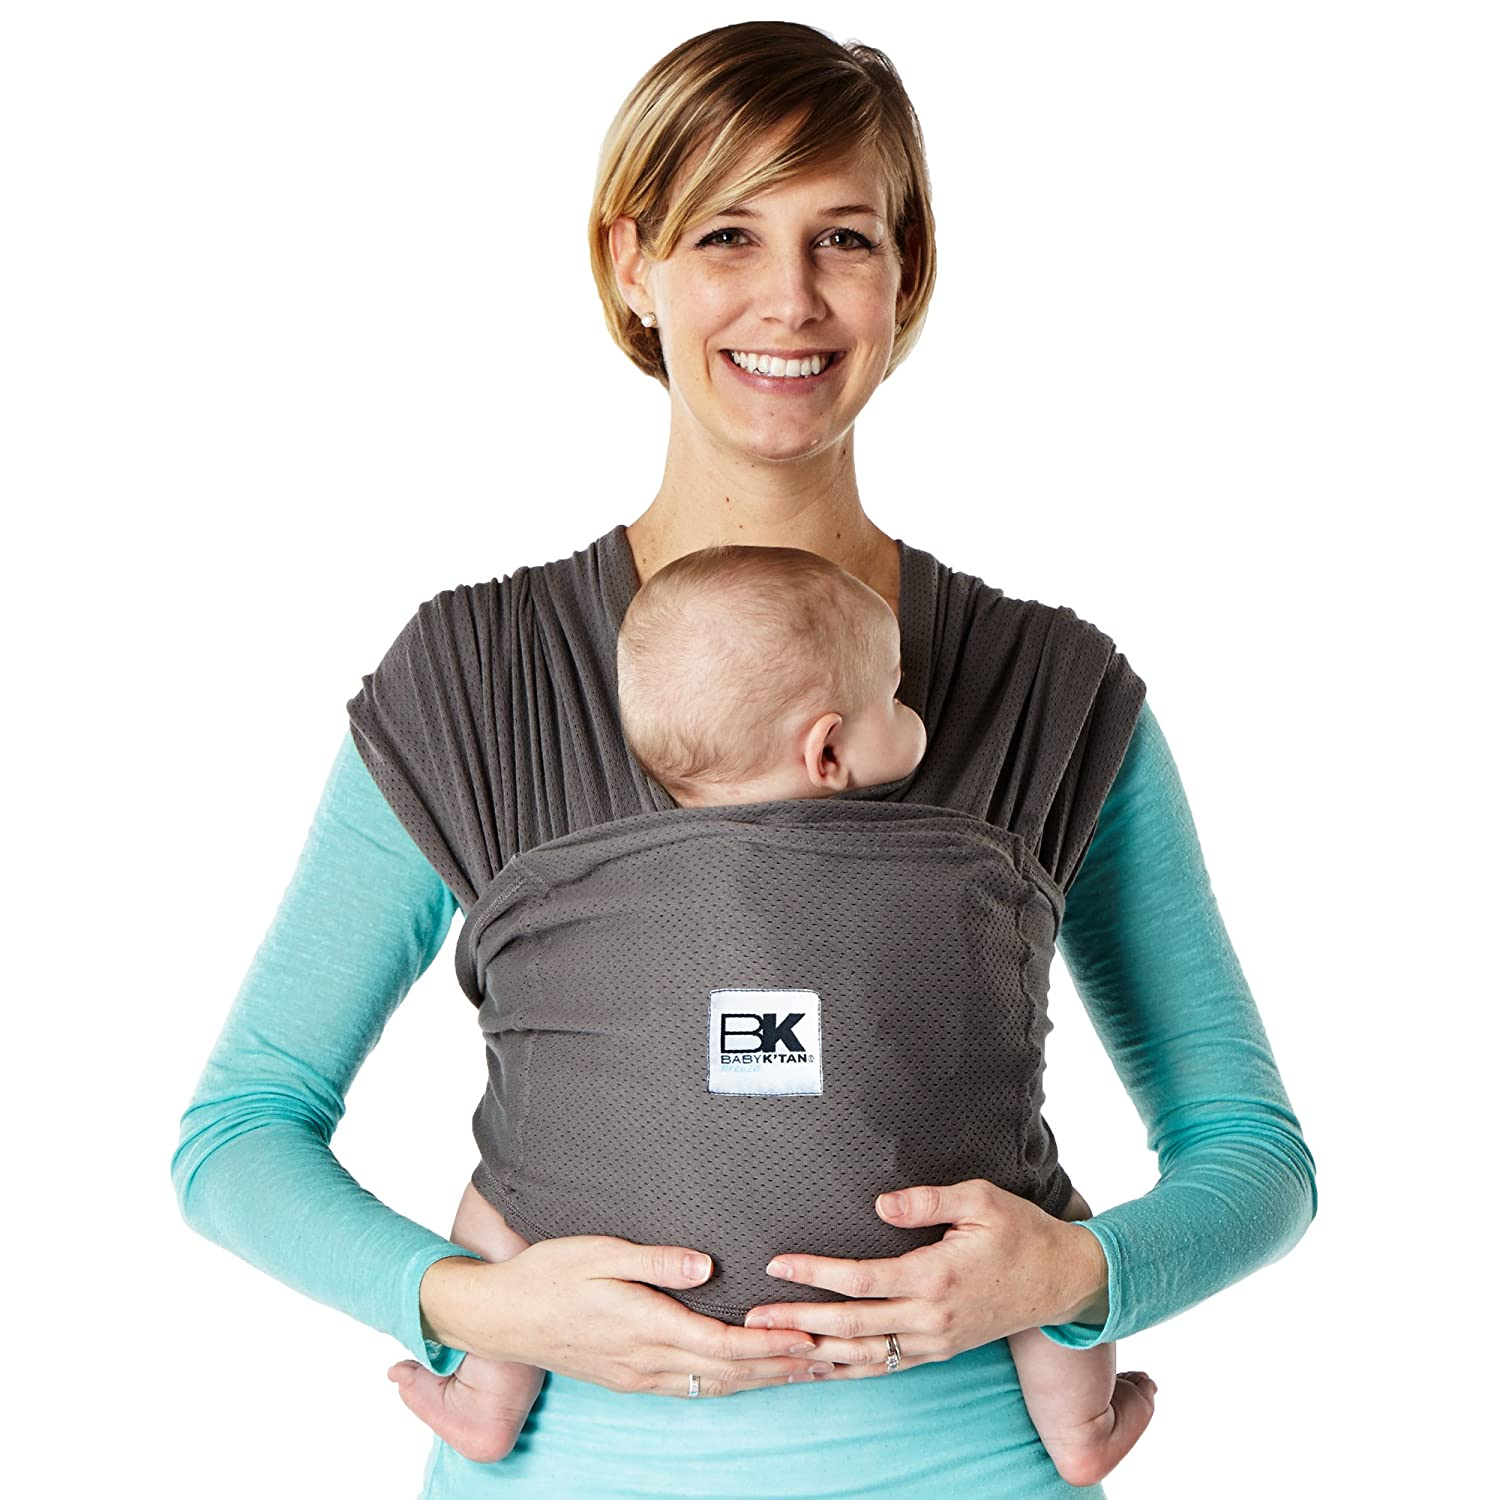 Baby K'tan BREEZE Baby Carrier, Charcoal, Small Baby K'tan BKBC-BREEZE-CH-S